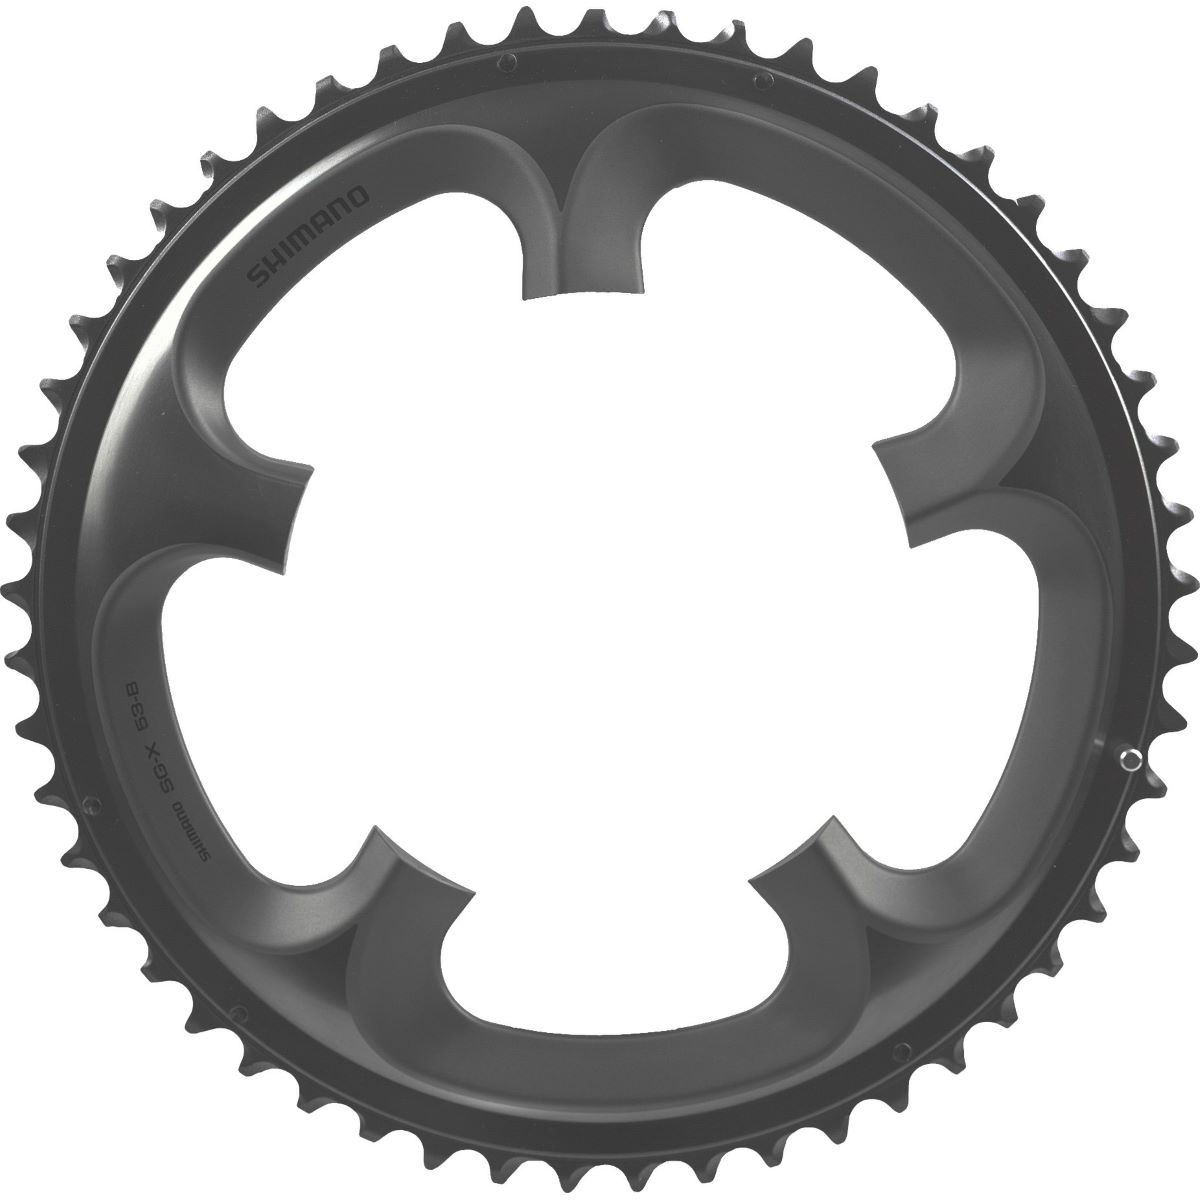 Shimano Ultegra Fc6700 10sp Double Chainrings - 52t 10 Speed Silver